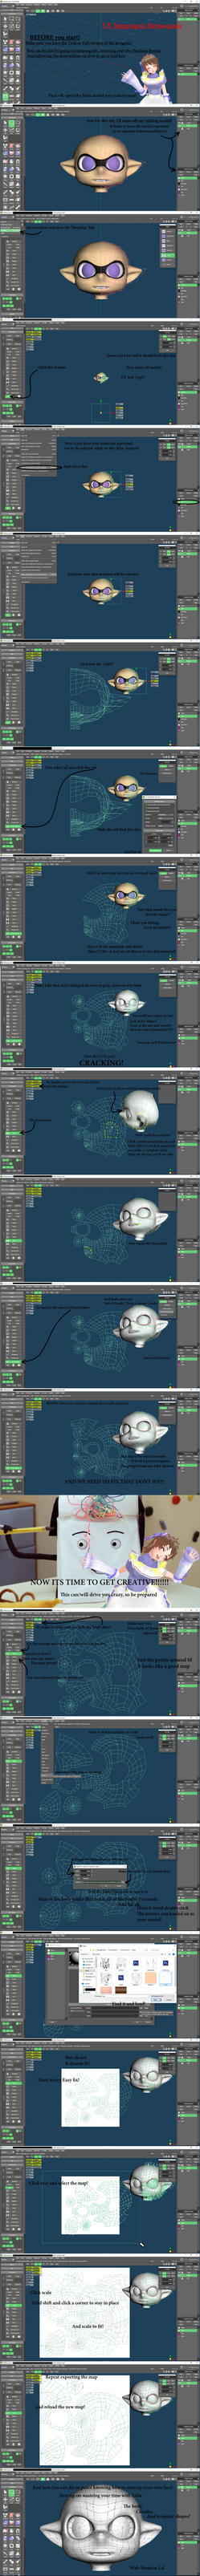   Meta+MMD  UV mapping in Metasequoia by LilMissLillie